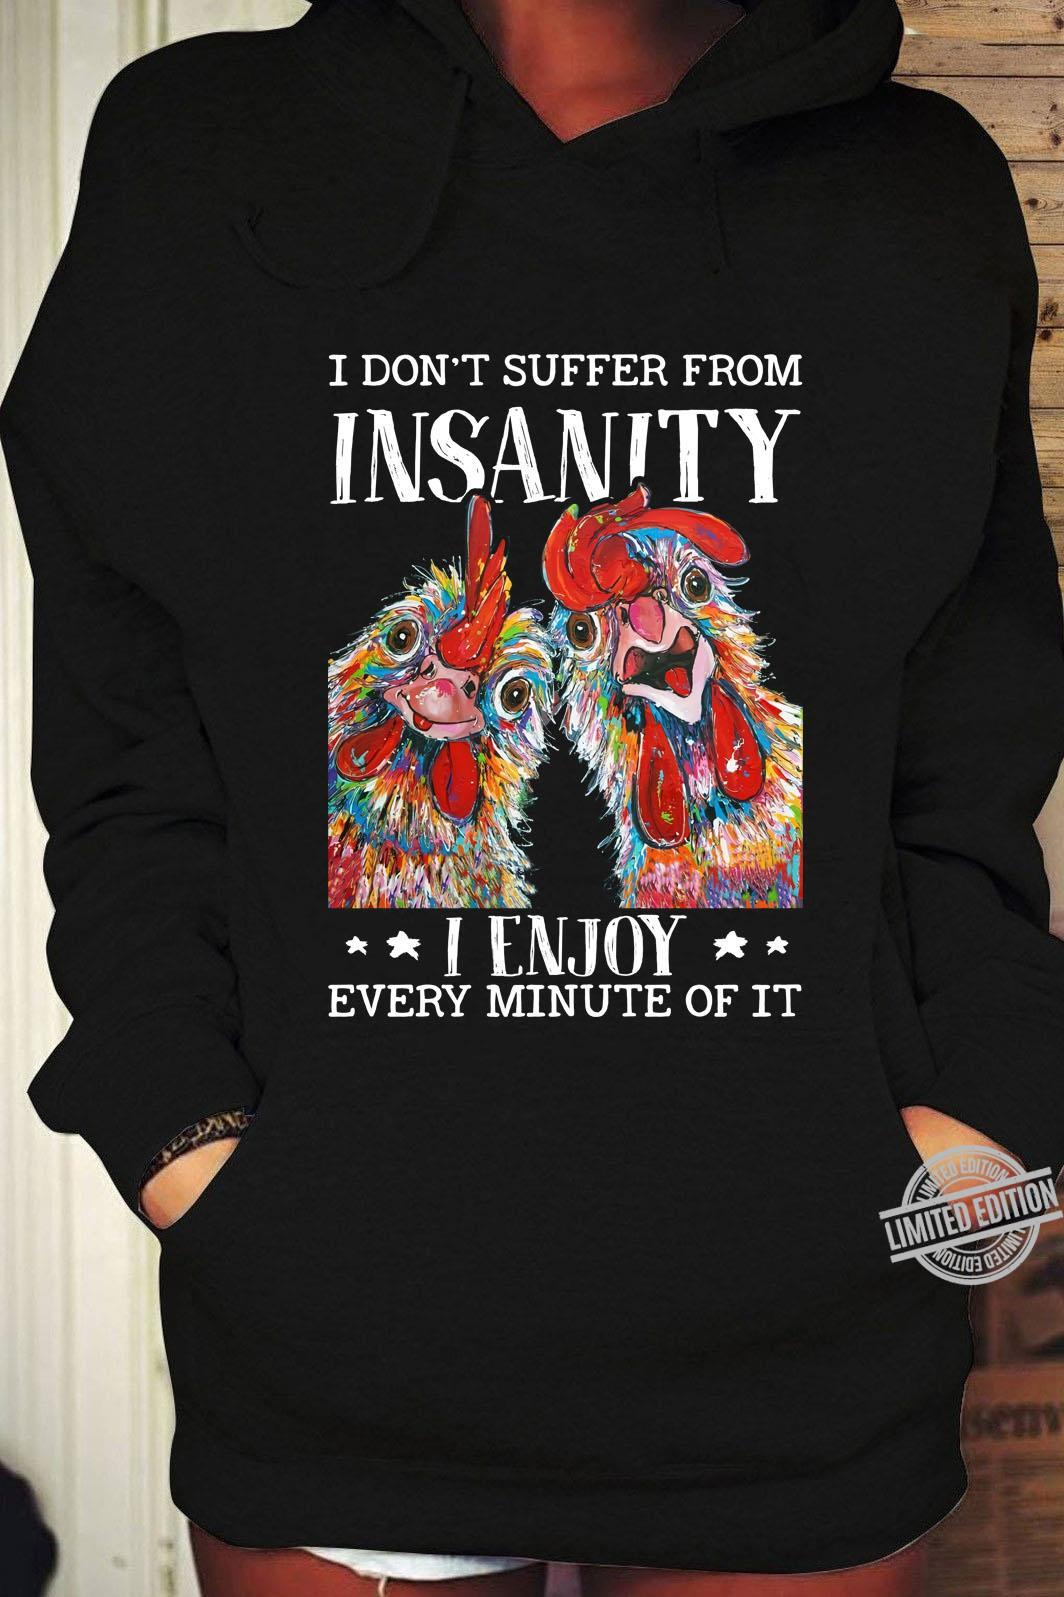 I Don't Suffer From Insanity I Enjoy Every Minute Of It Shirt